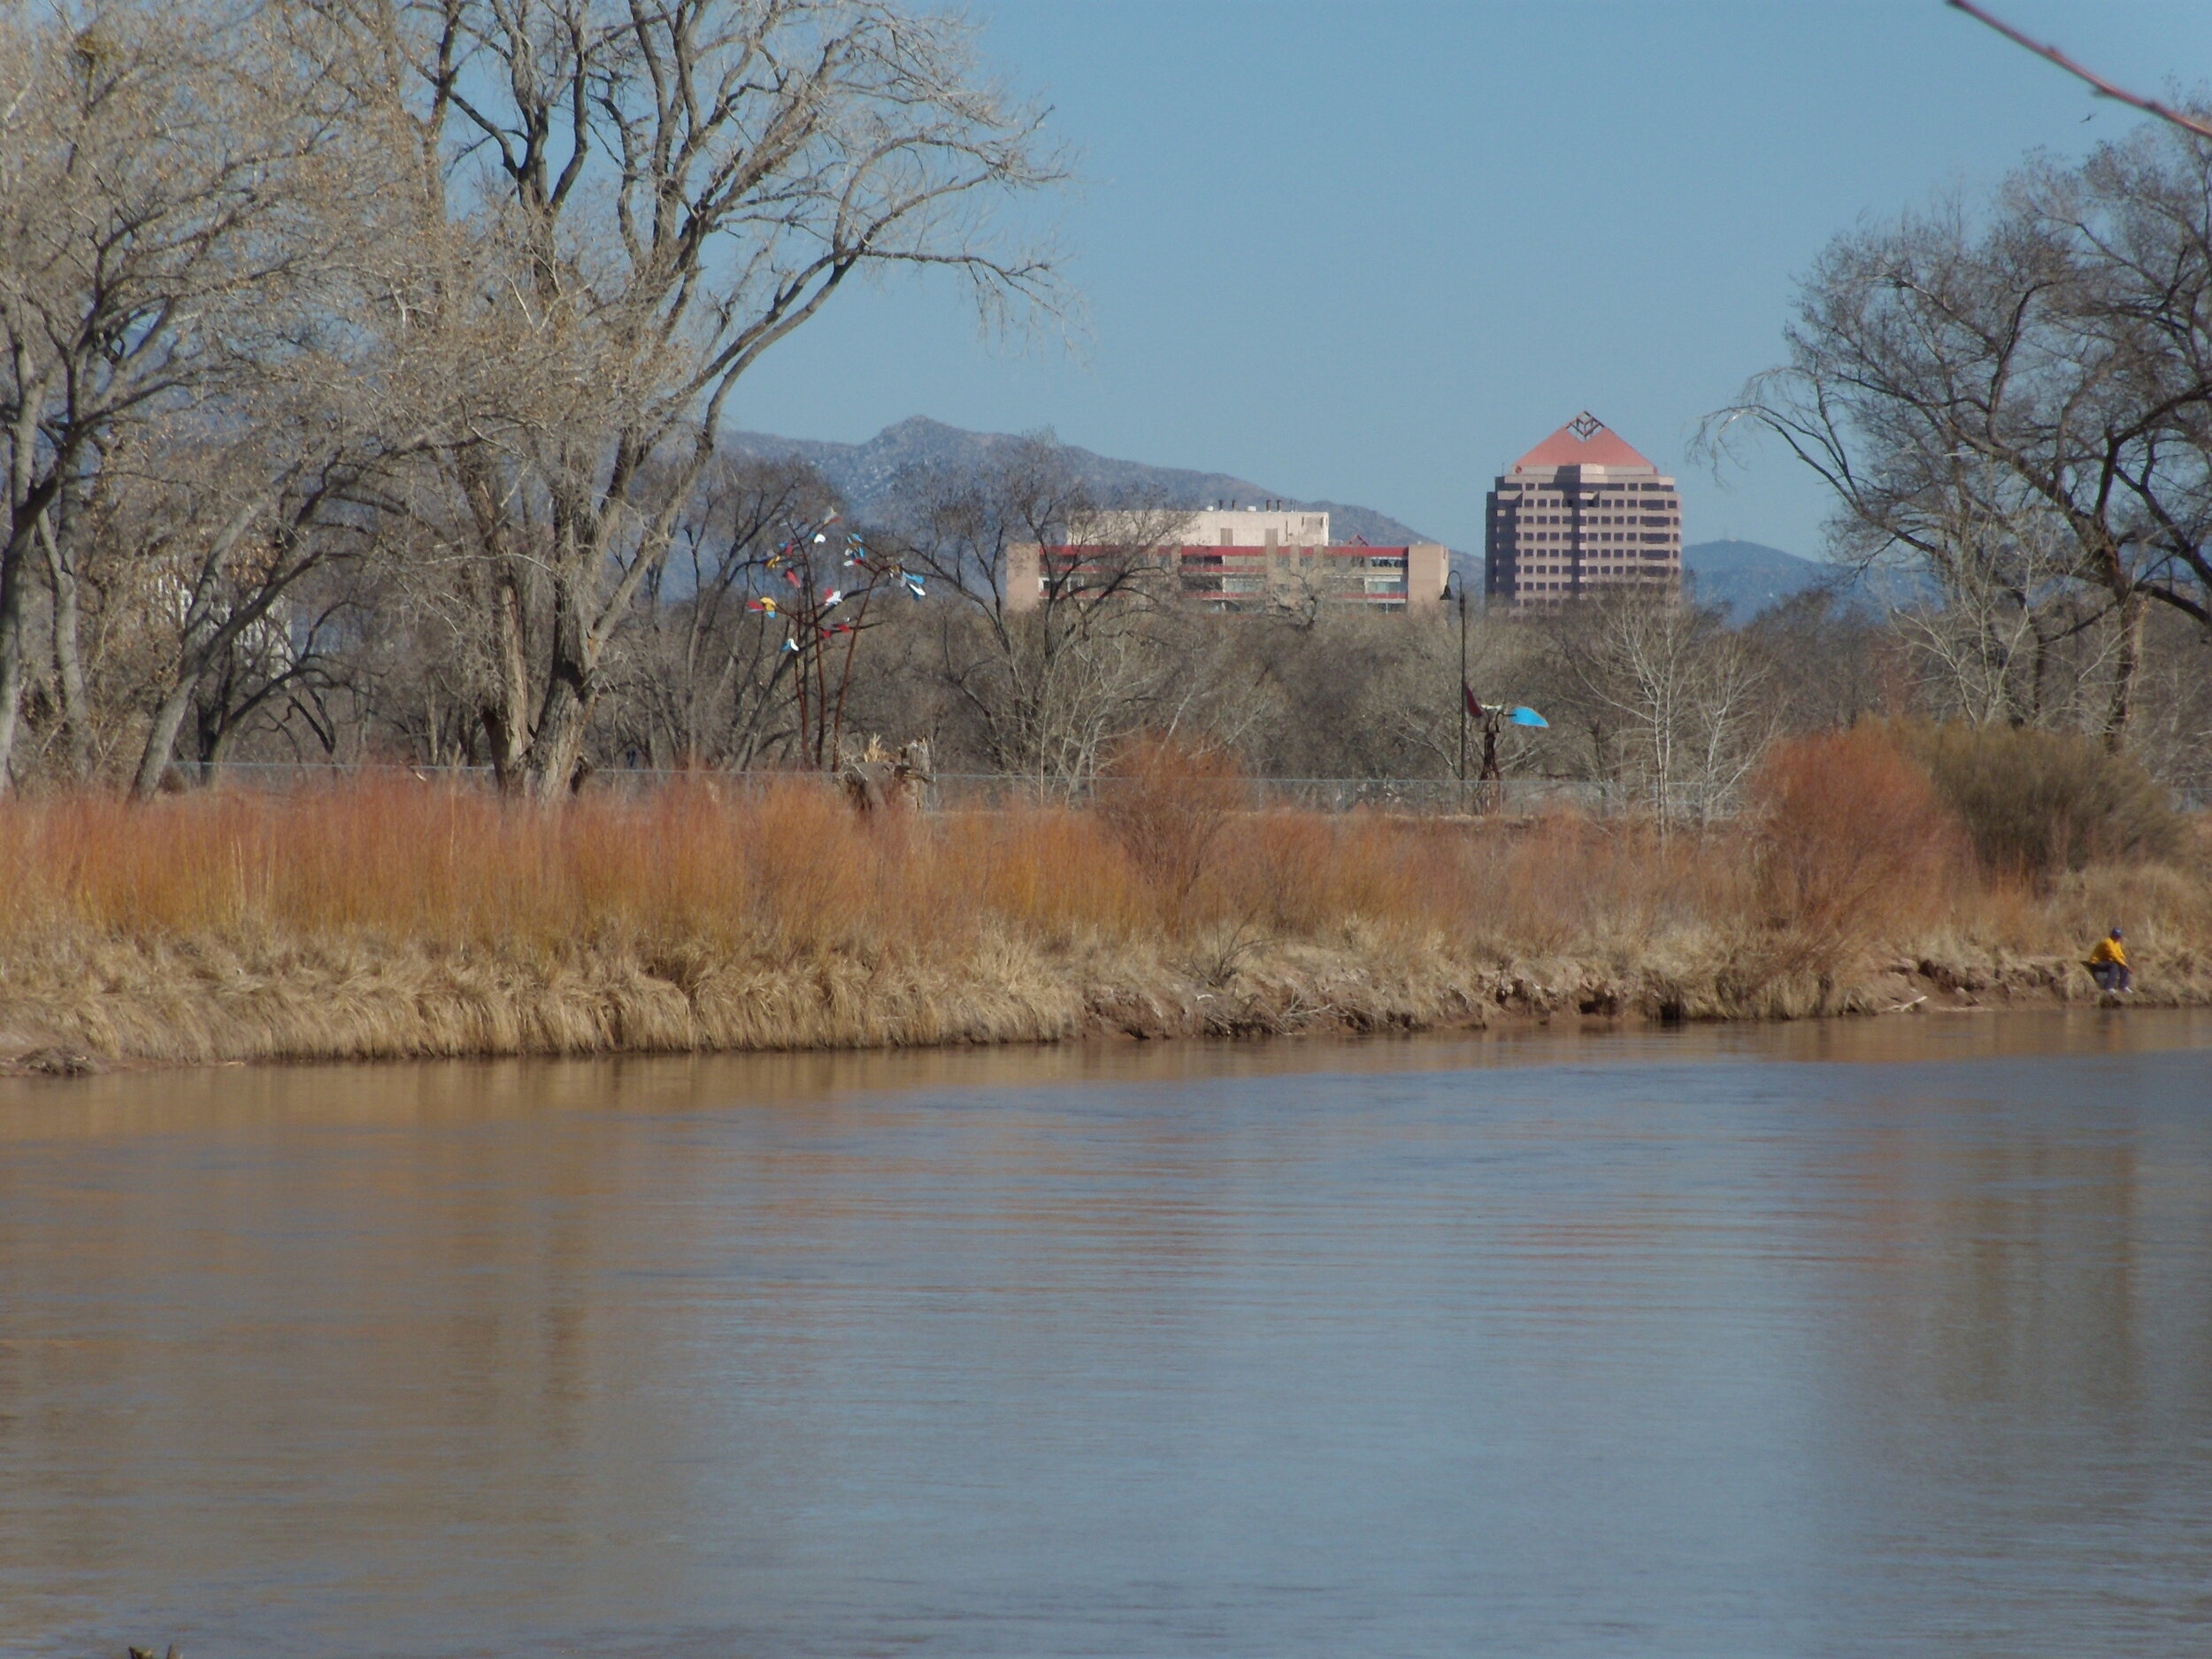 The Rio Grande Valley State Park was the fulfillment of Aldo Leopold's vision for a riparian reserve in Albuquerque, Downtown Albuquerque is in the background (photo by Brad Stebleton)